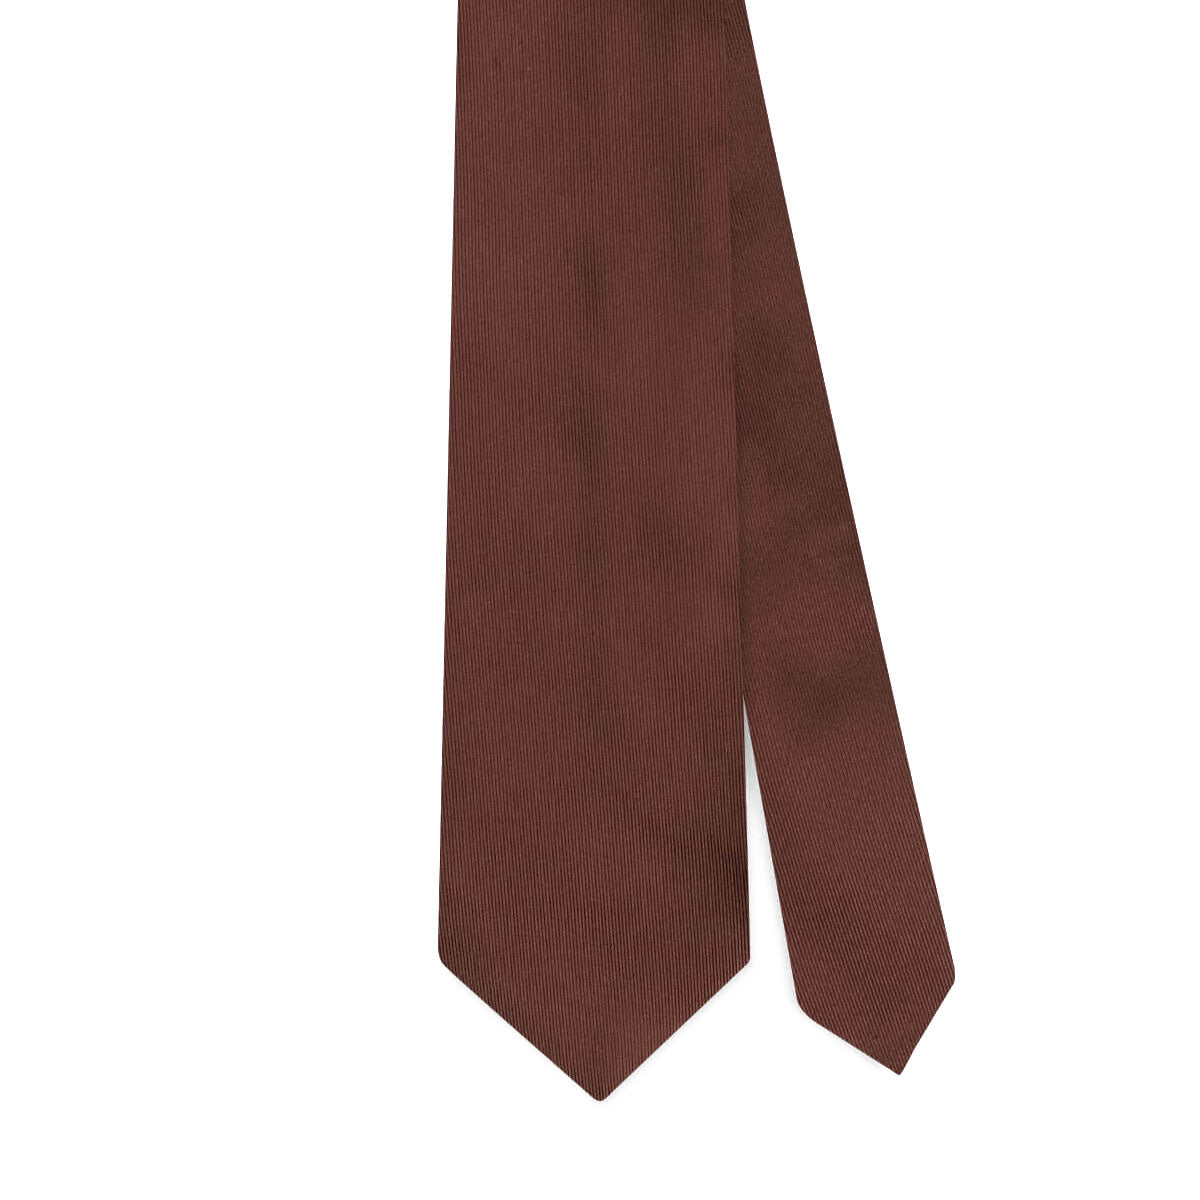 SOLID WOVEN SILK JACQUARD TIE – BROWN